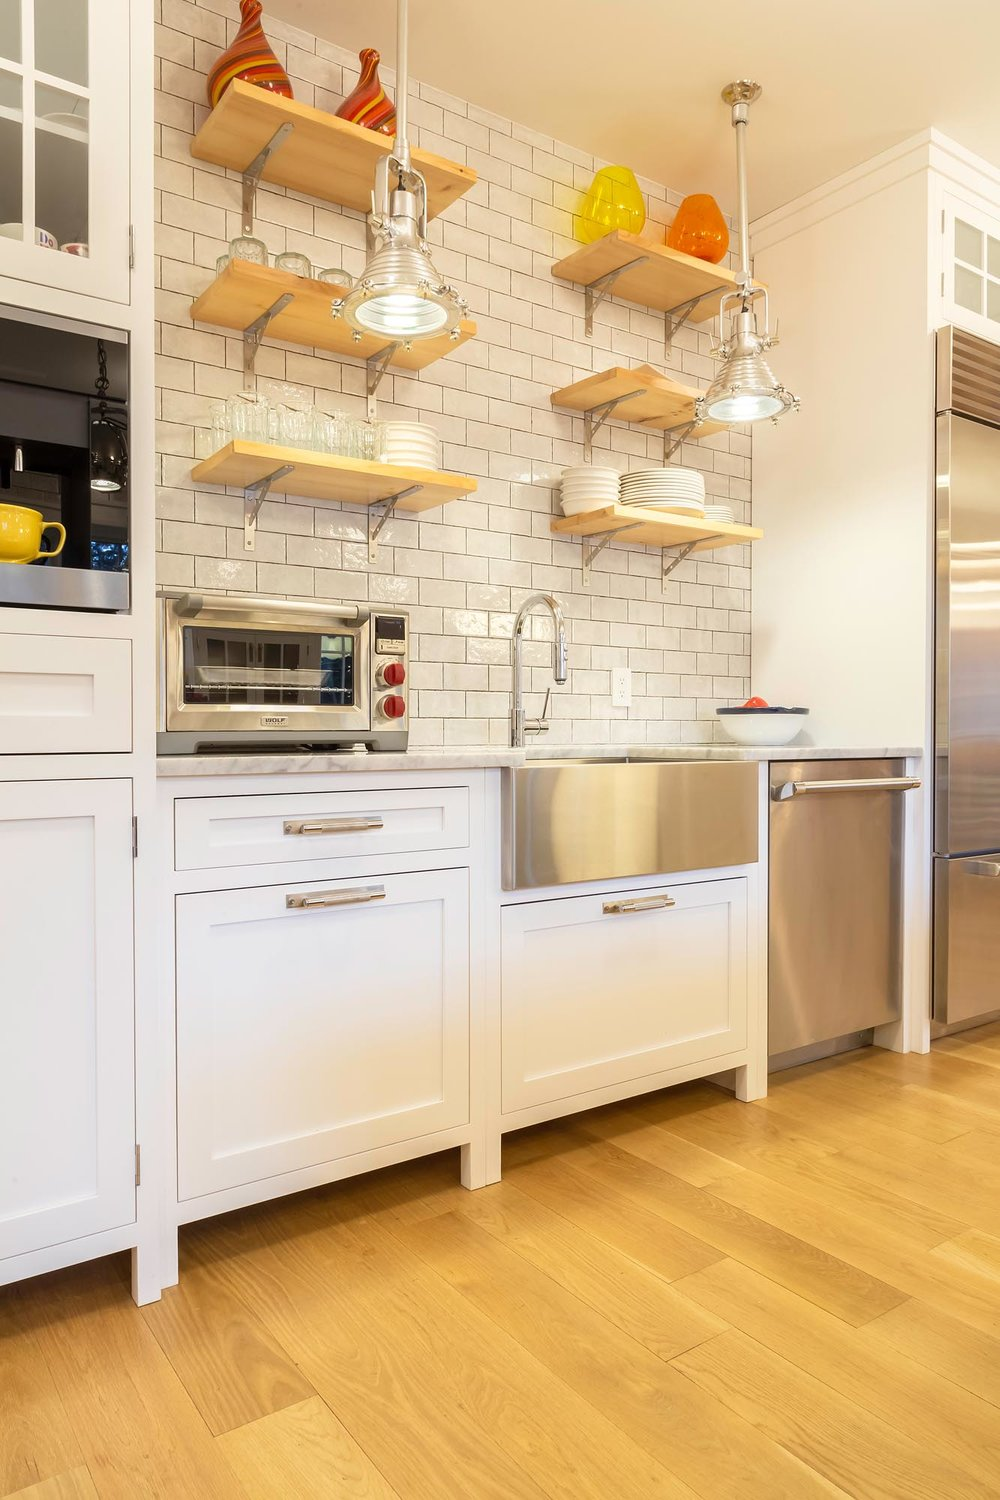 Transitional white kitchen with cabinets and elevated wooden shelves